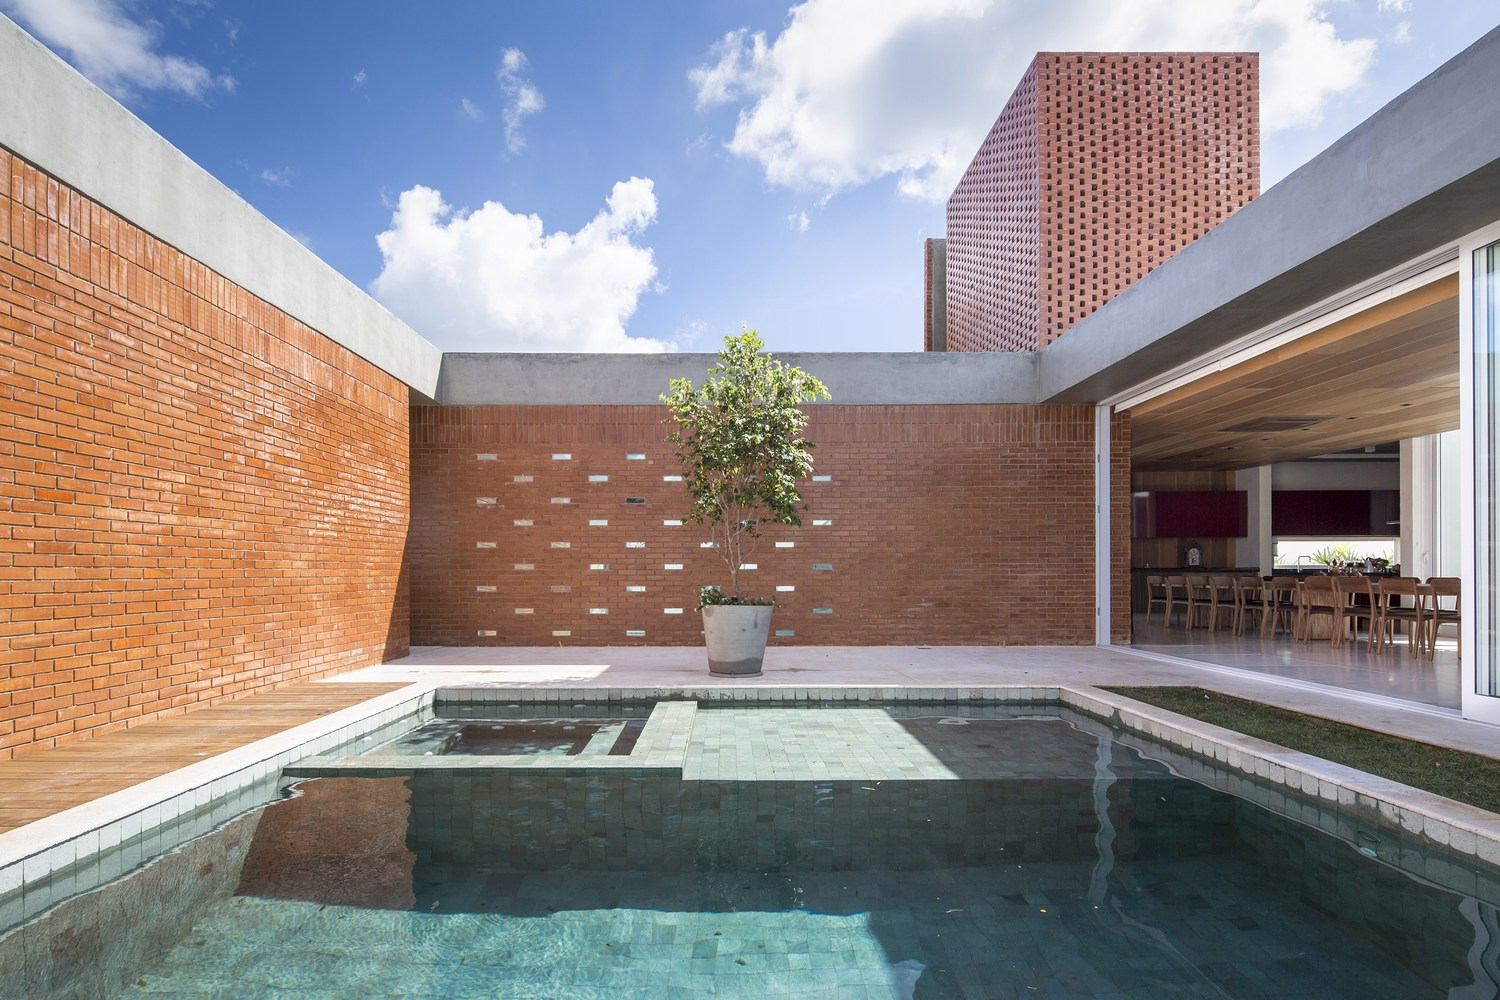 Though composed of solid bricks, this courtyard home in Brazil, gives an idea of stone or brick veneer can offer.